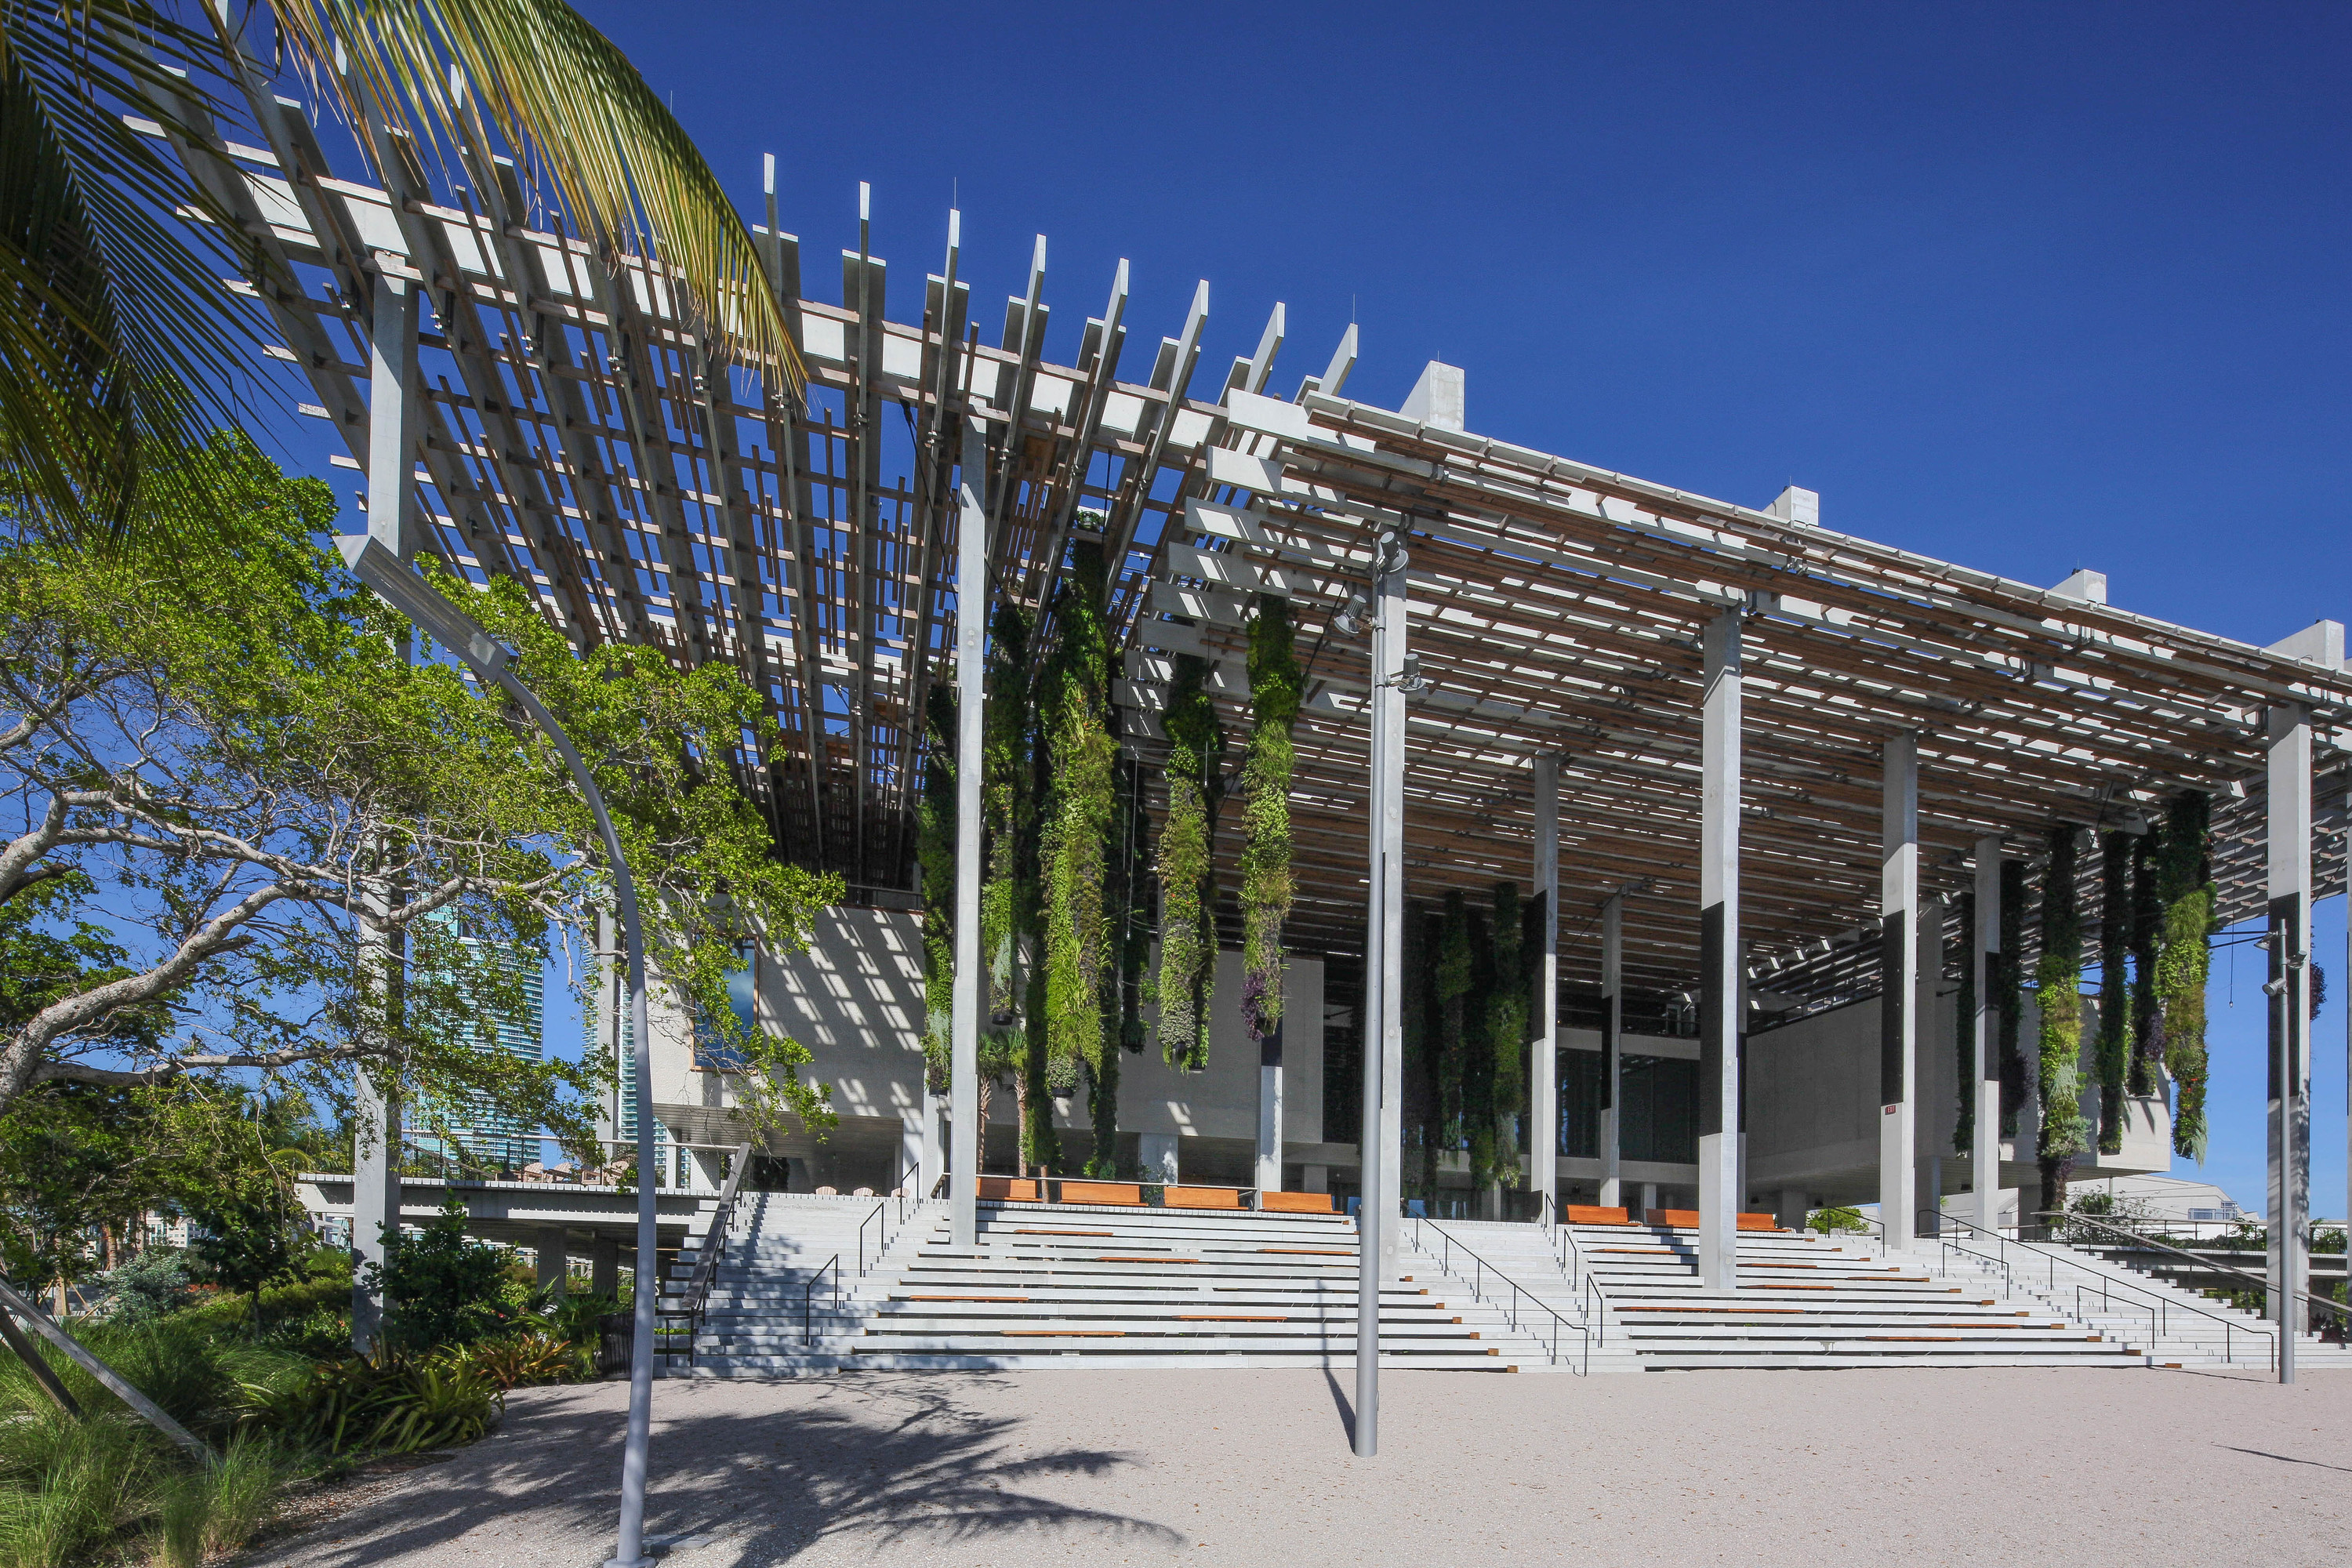 Miami's can't-miss museums